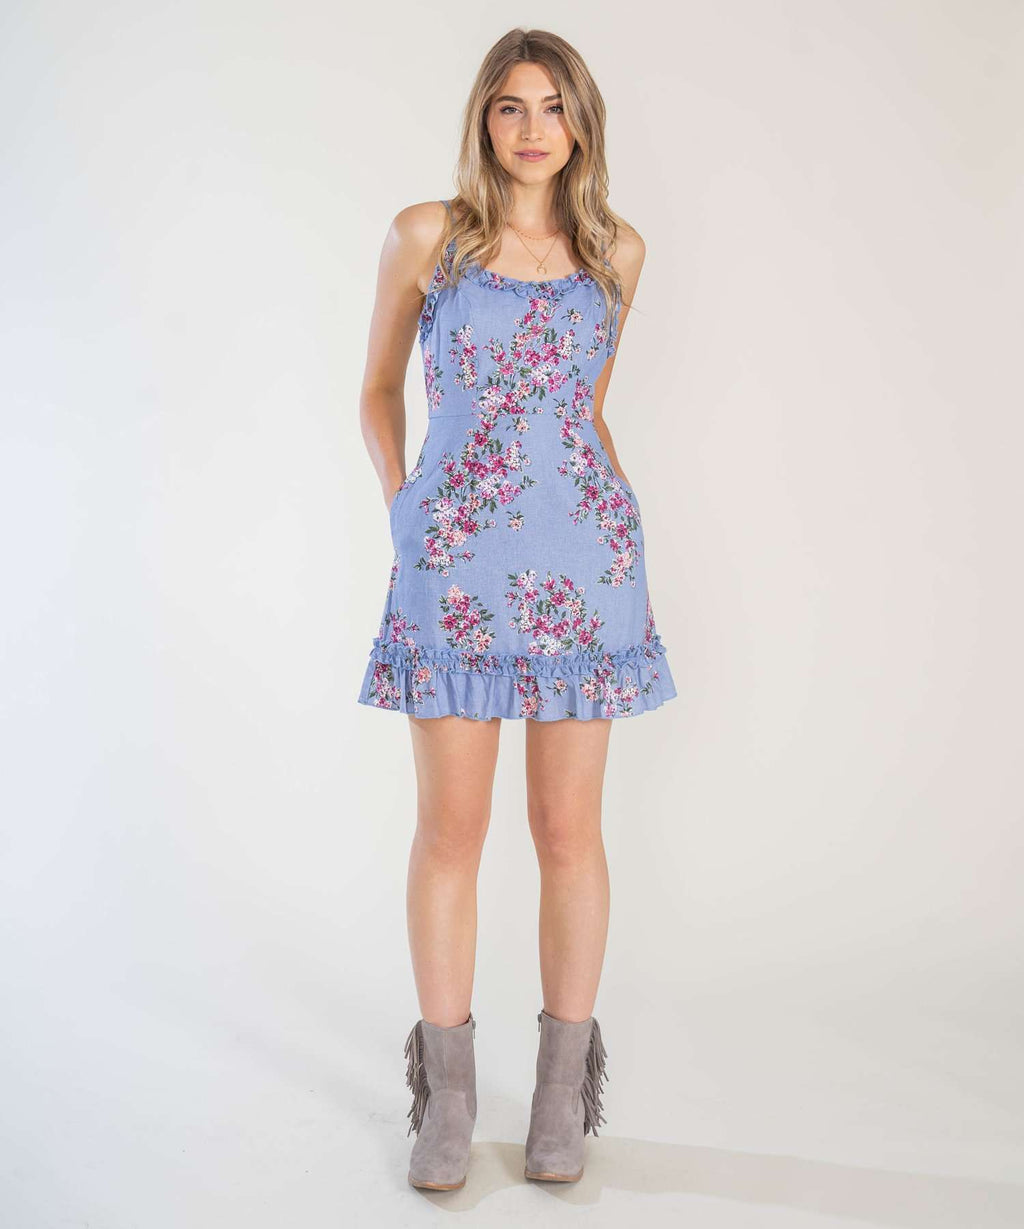 Blue Jean Baby Printed Ruffle Mini Dress